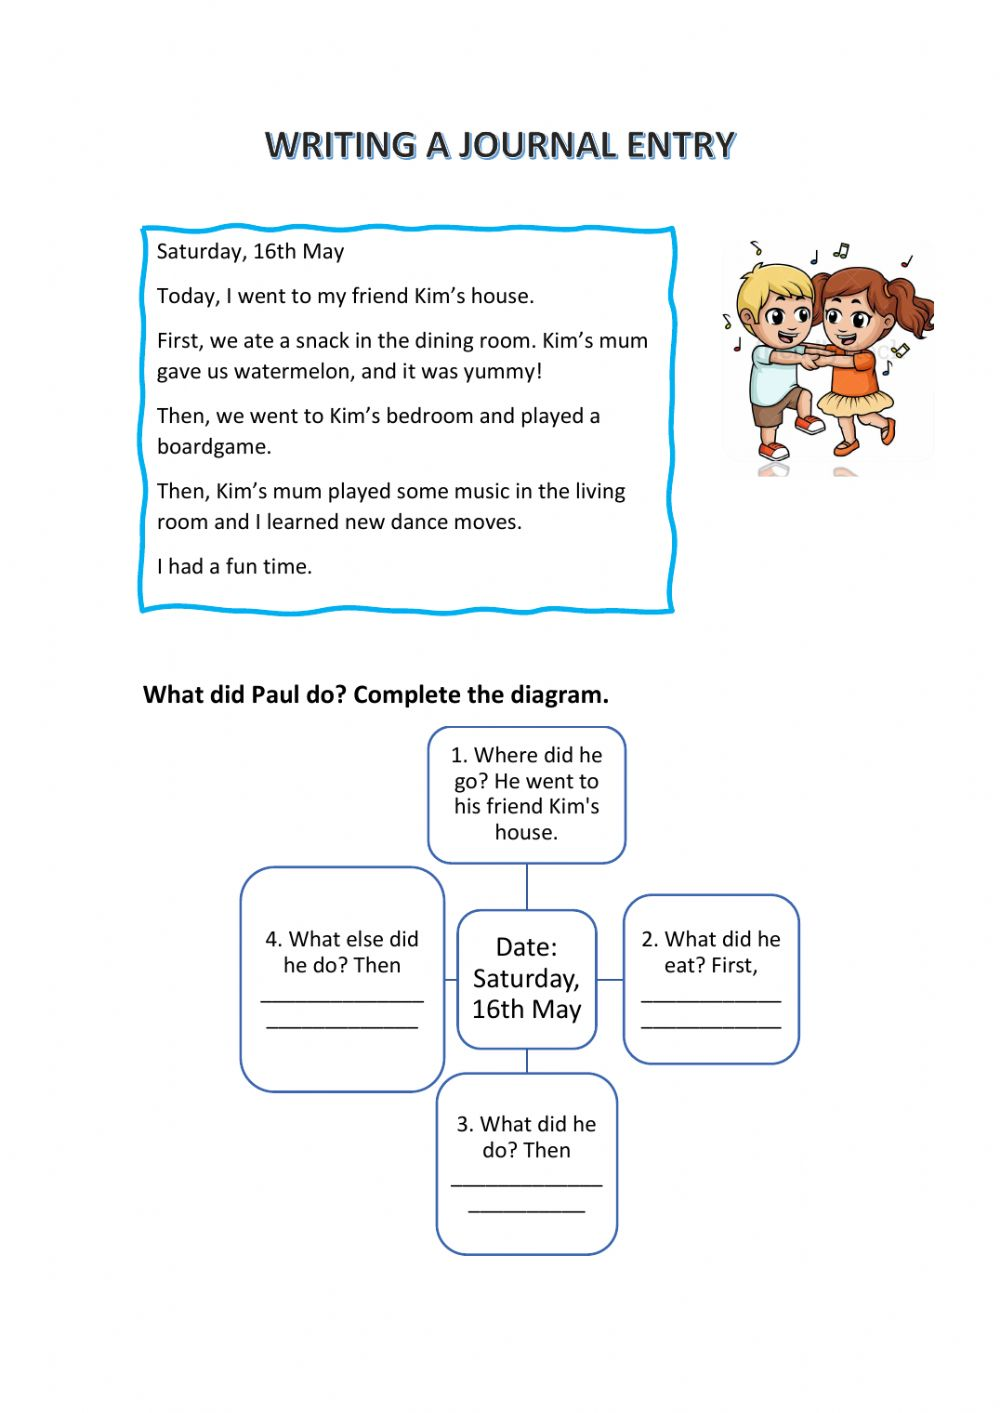 Writing a journal entry worksheet